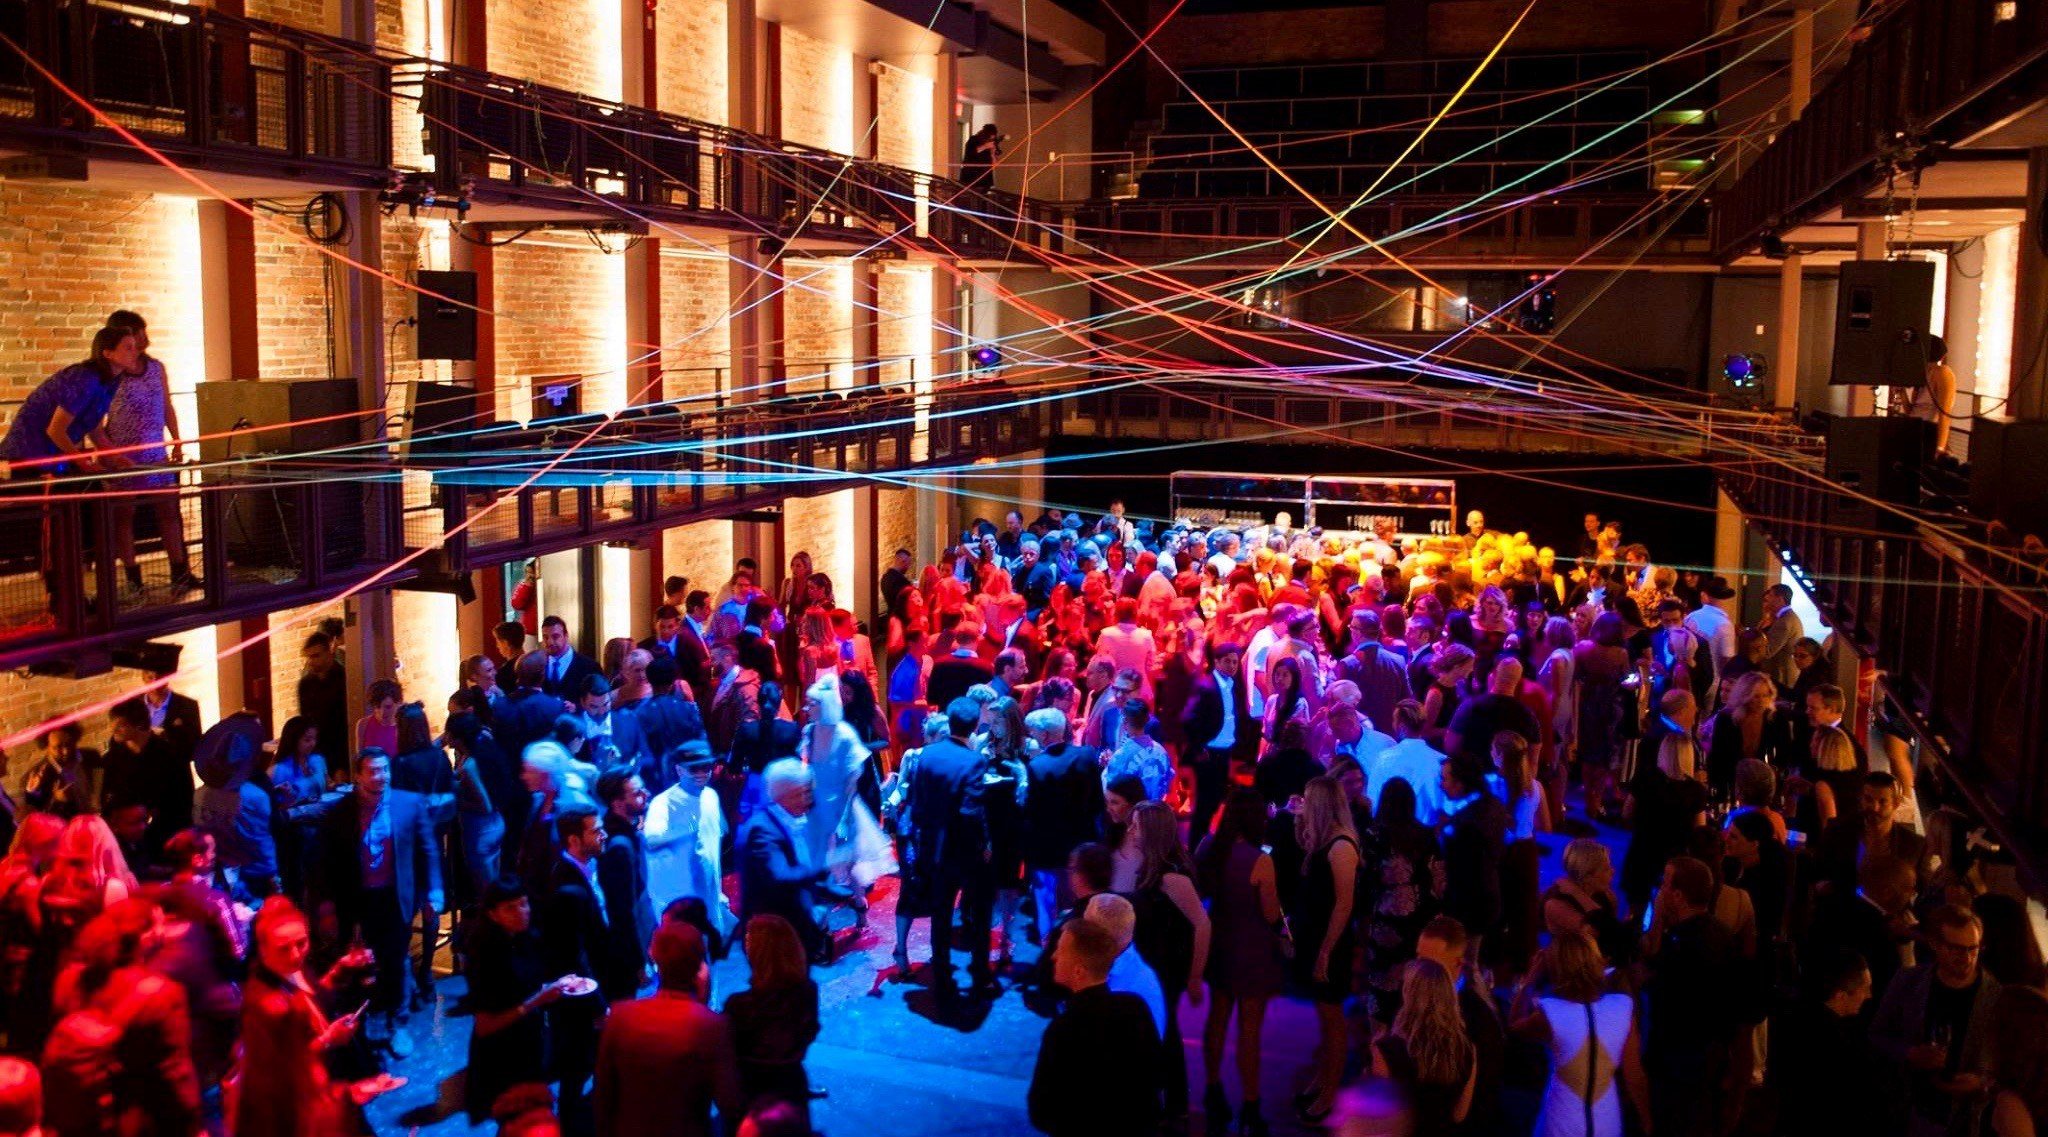 Toronto's Power Plant winter opening party is this Friday